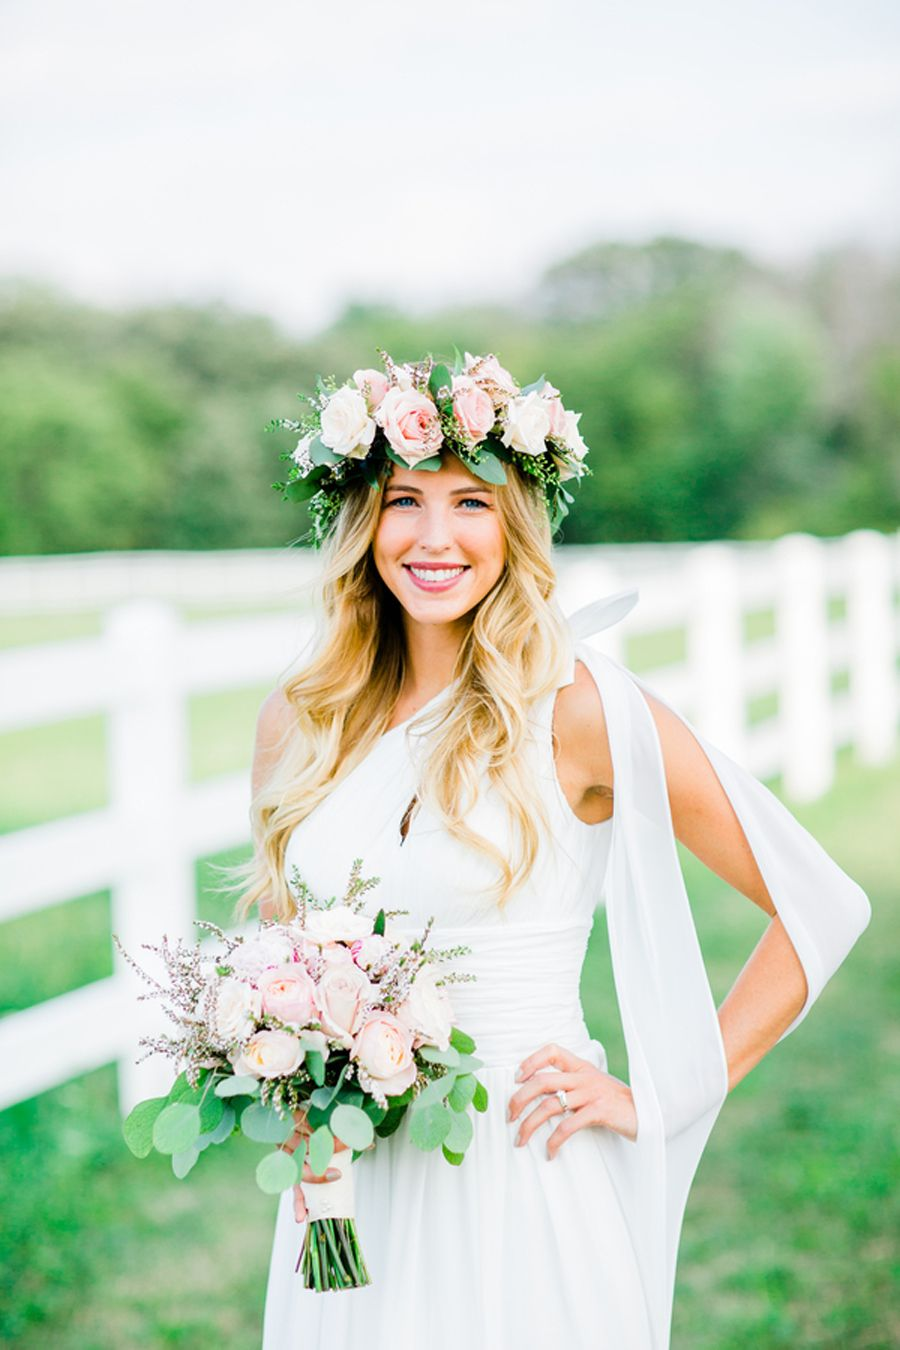 Modern boho glam wedding inspiration. www.bohodaydreams.com